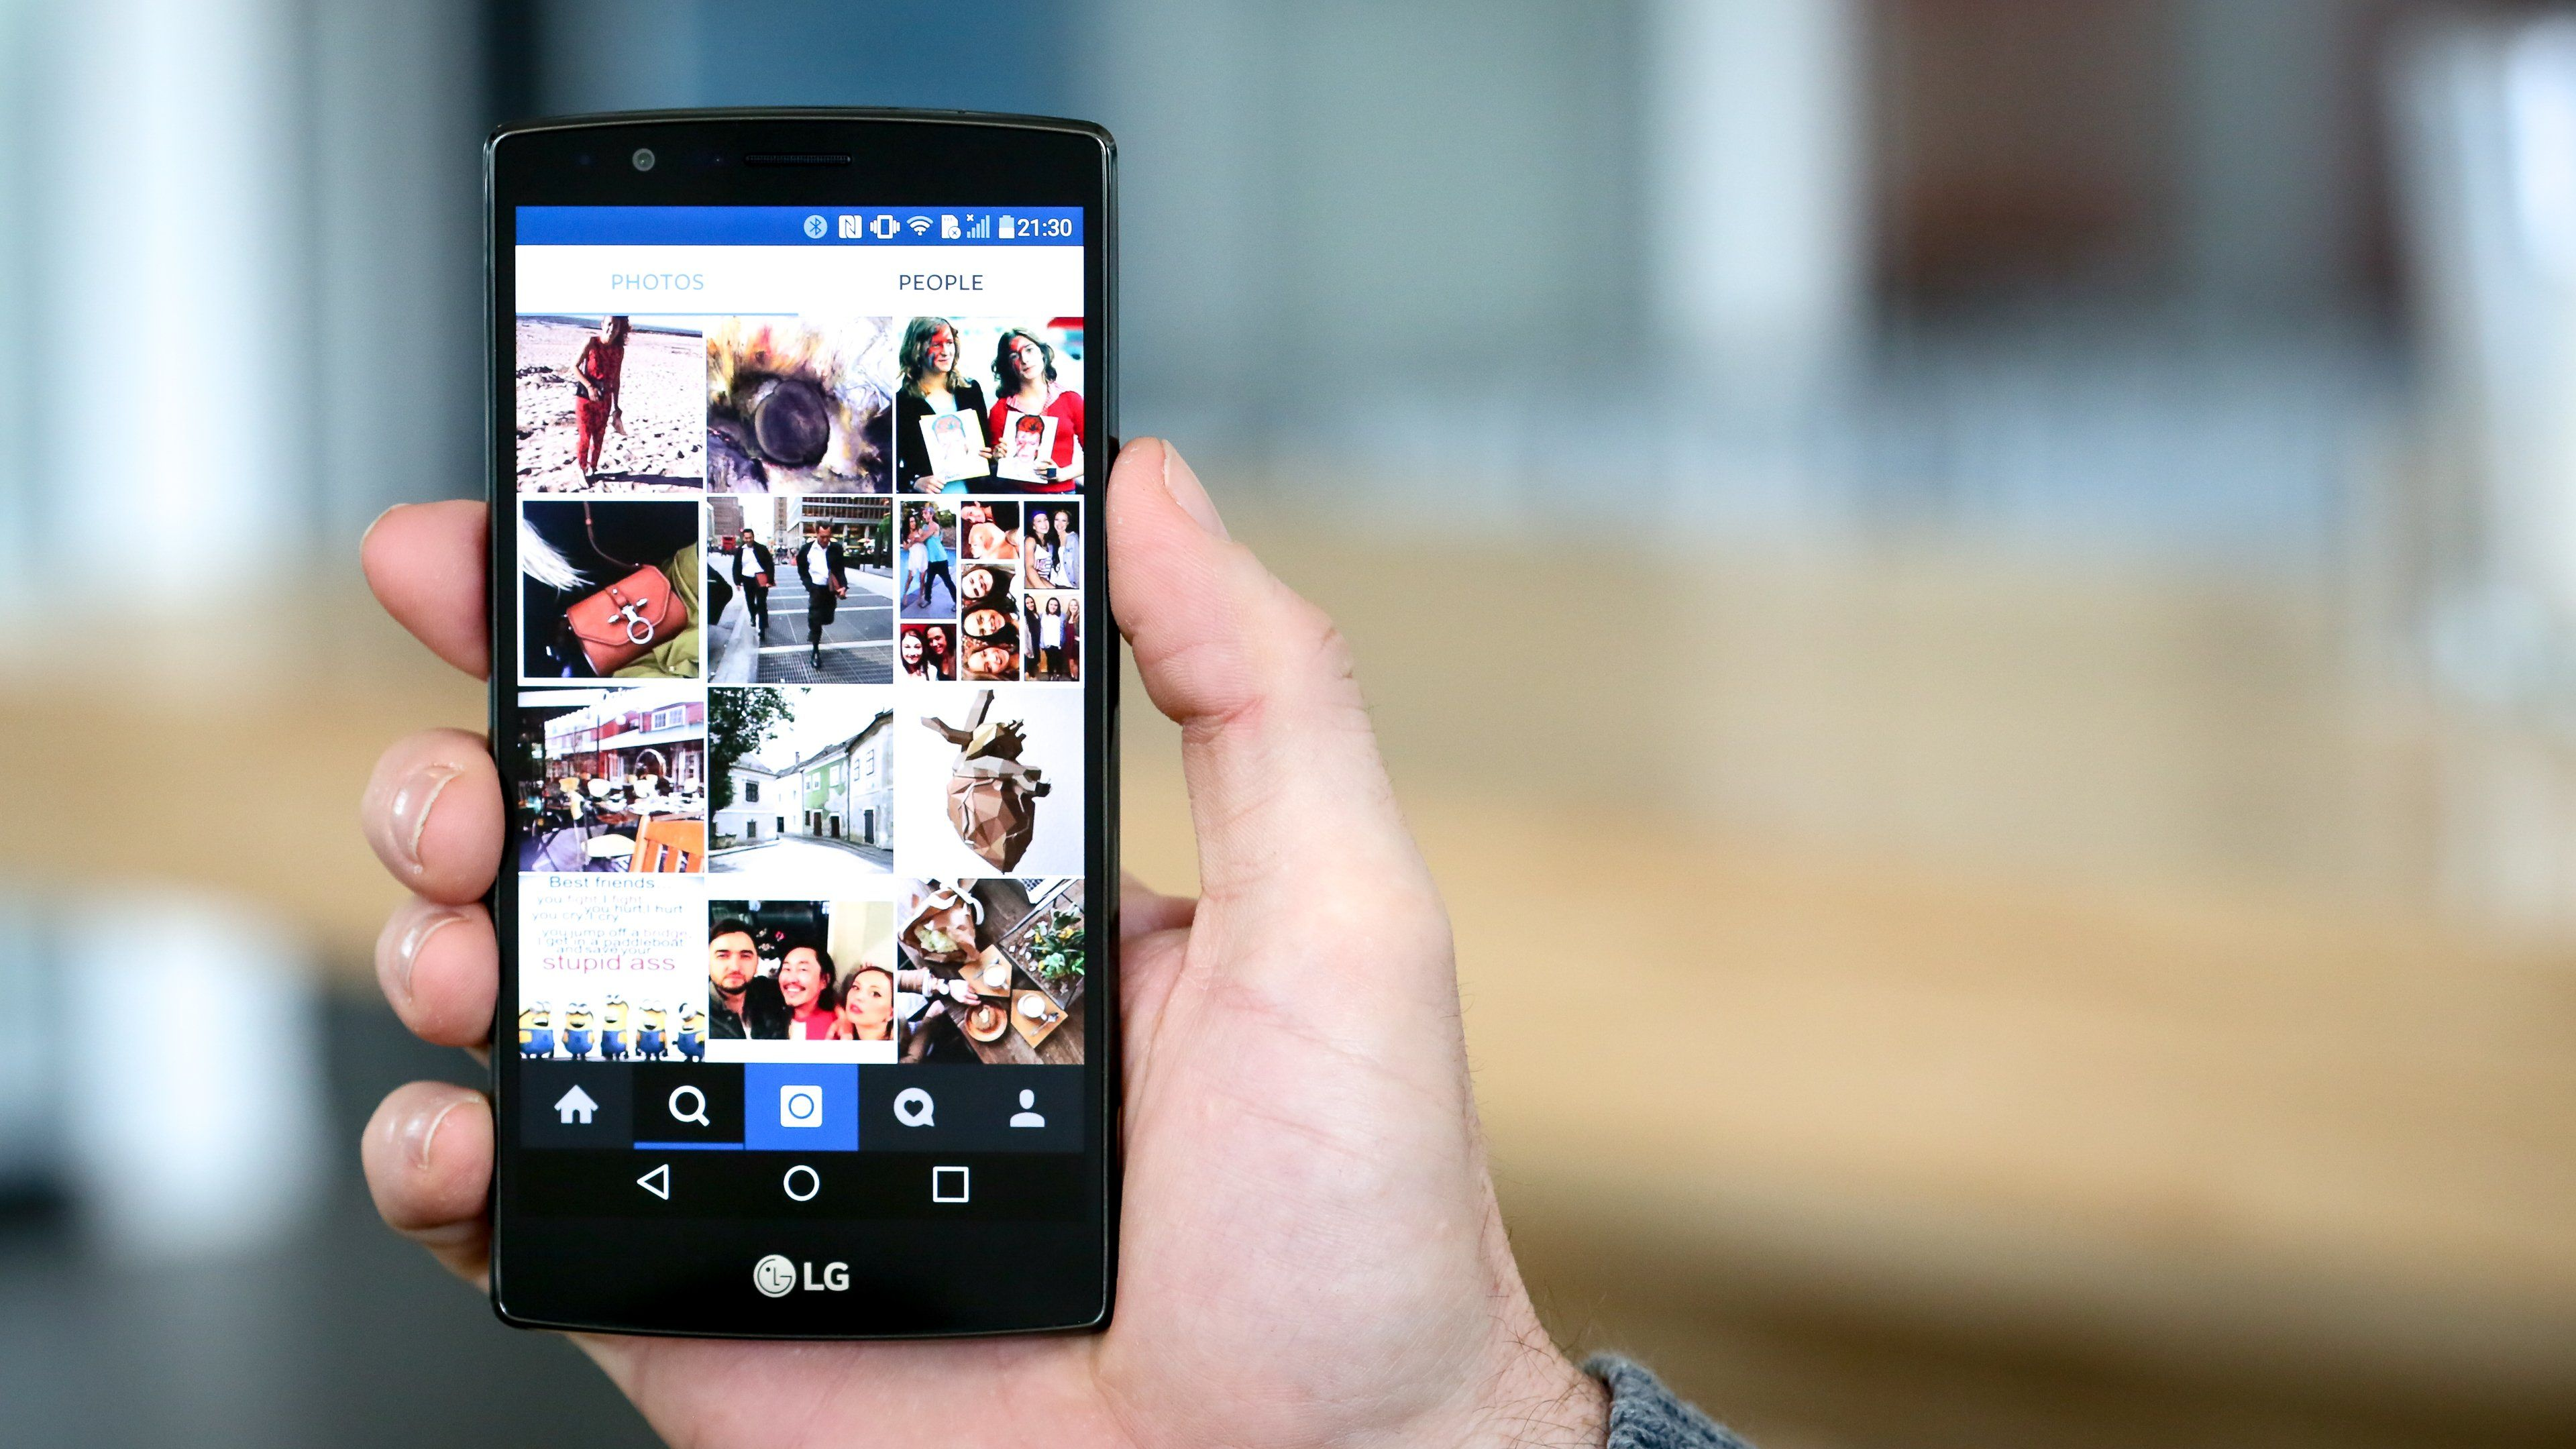 d5ddd787c35b7a8a864d0148cc4afe97 - How To Get Rid Of Too Many Users On Instagram